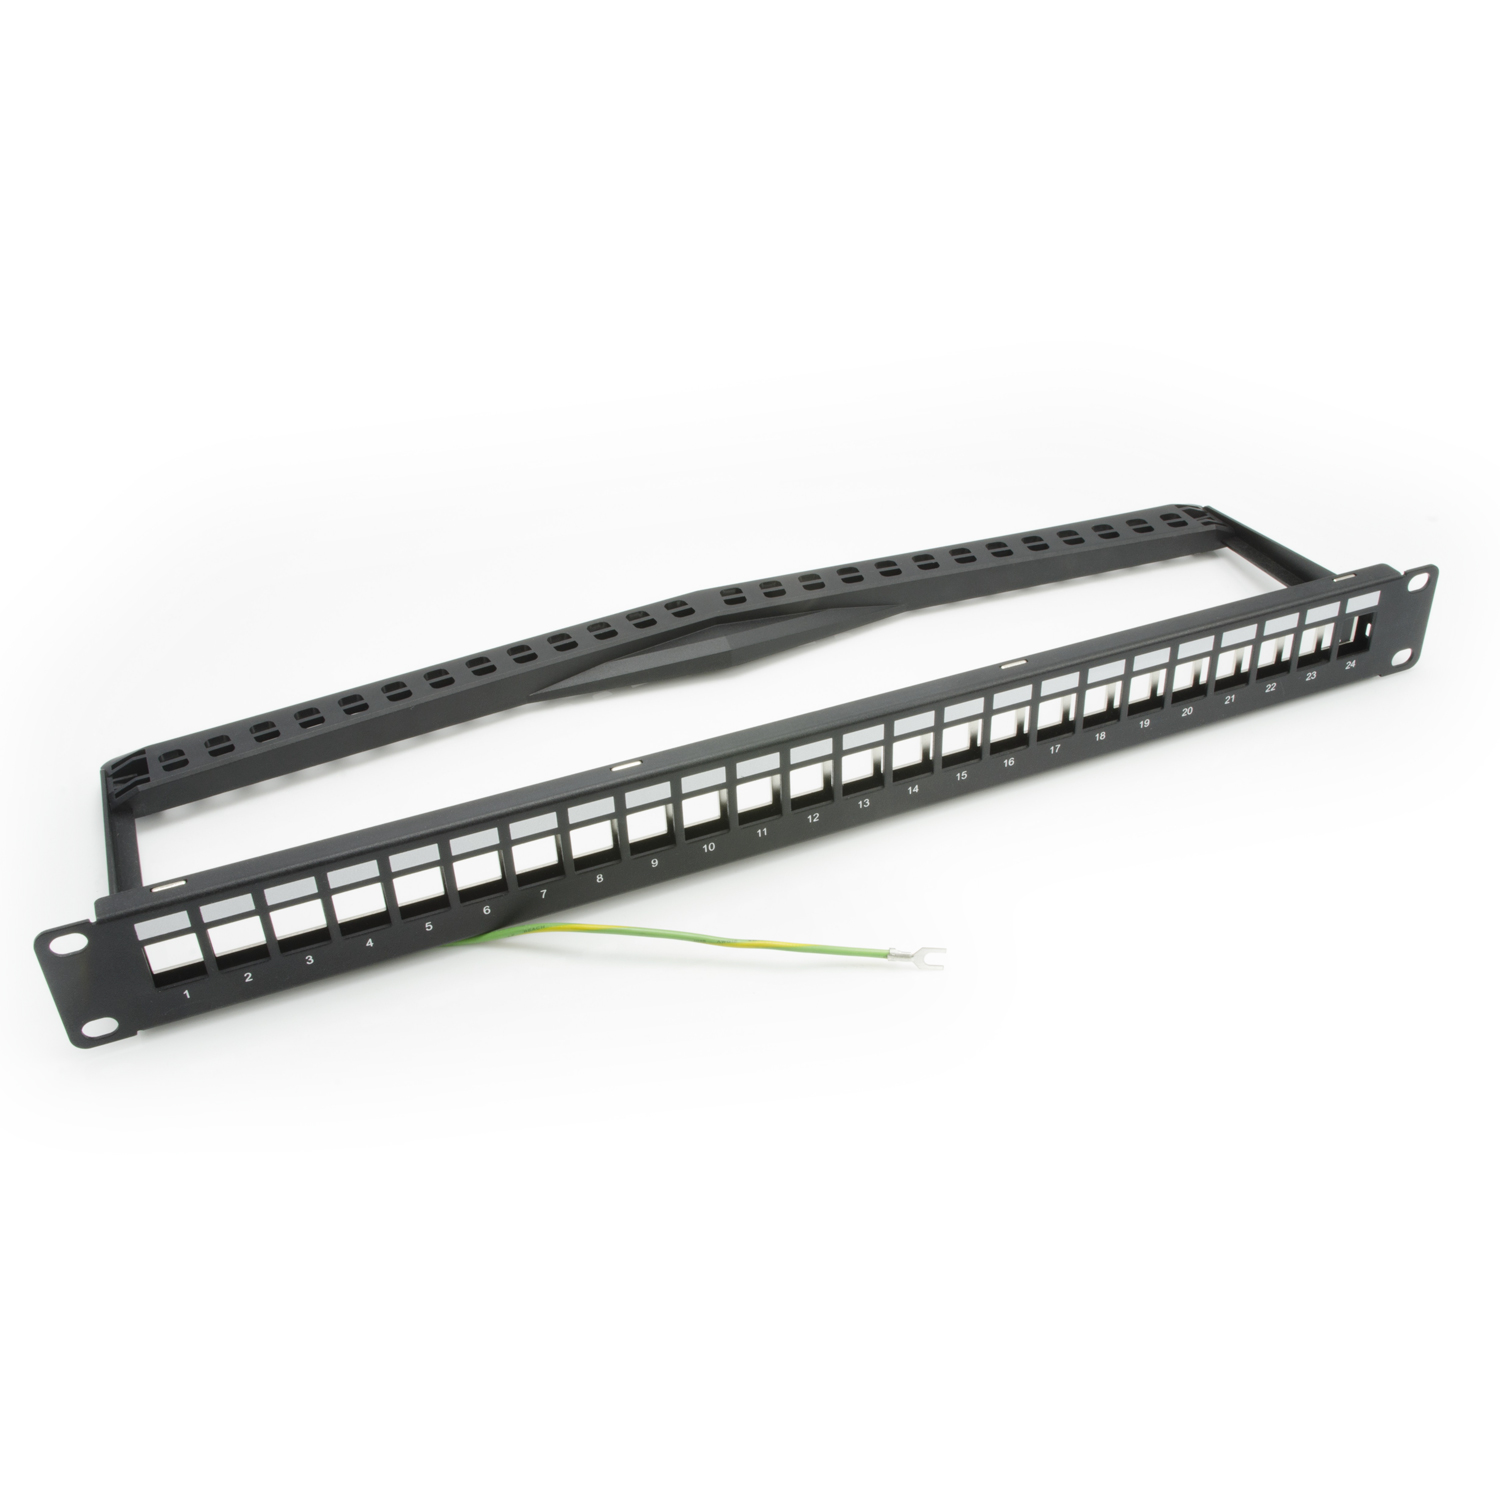 1U 24-Port UTP Snap-In Type Discrete Patch Panel with Icon